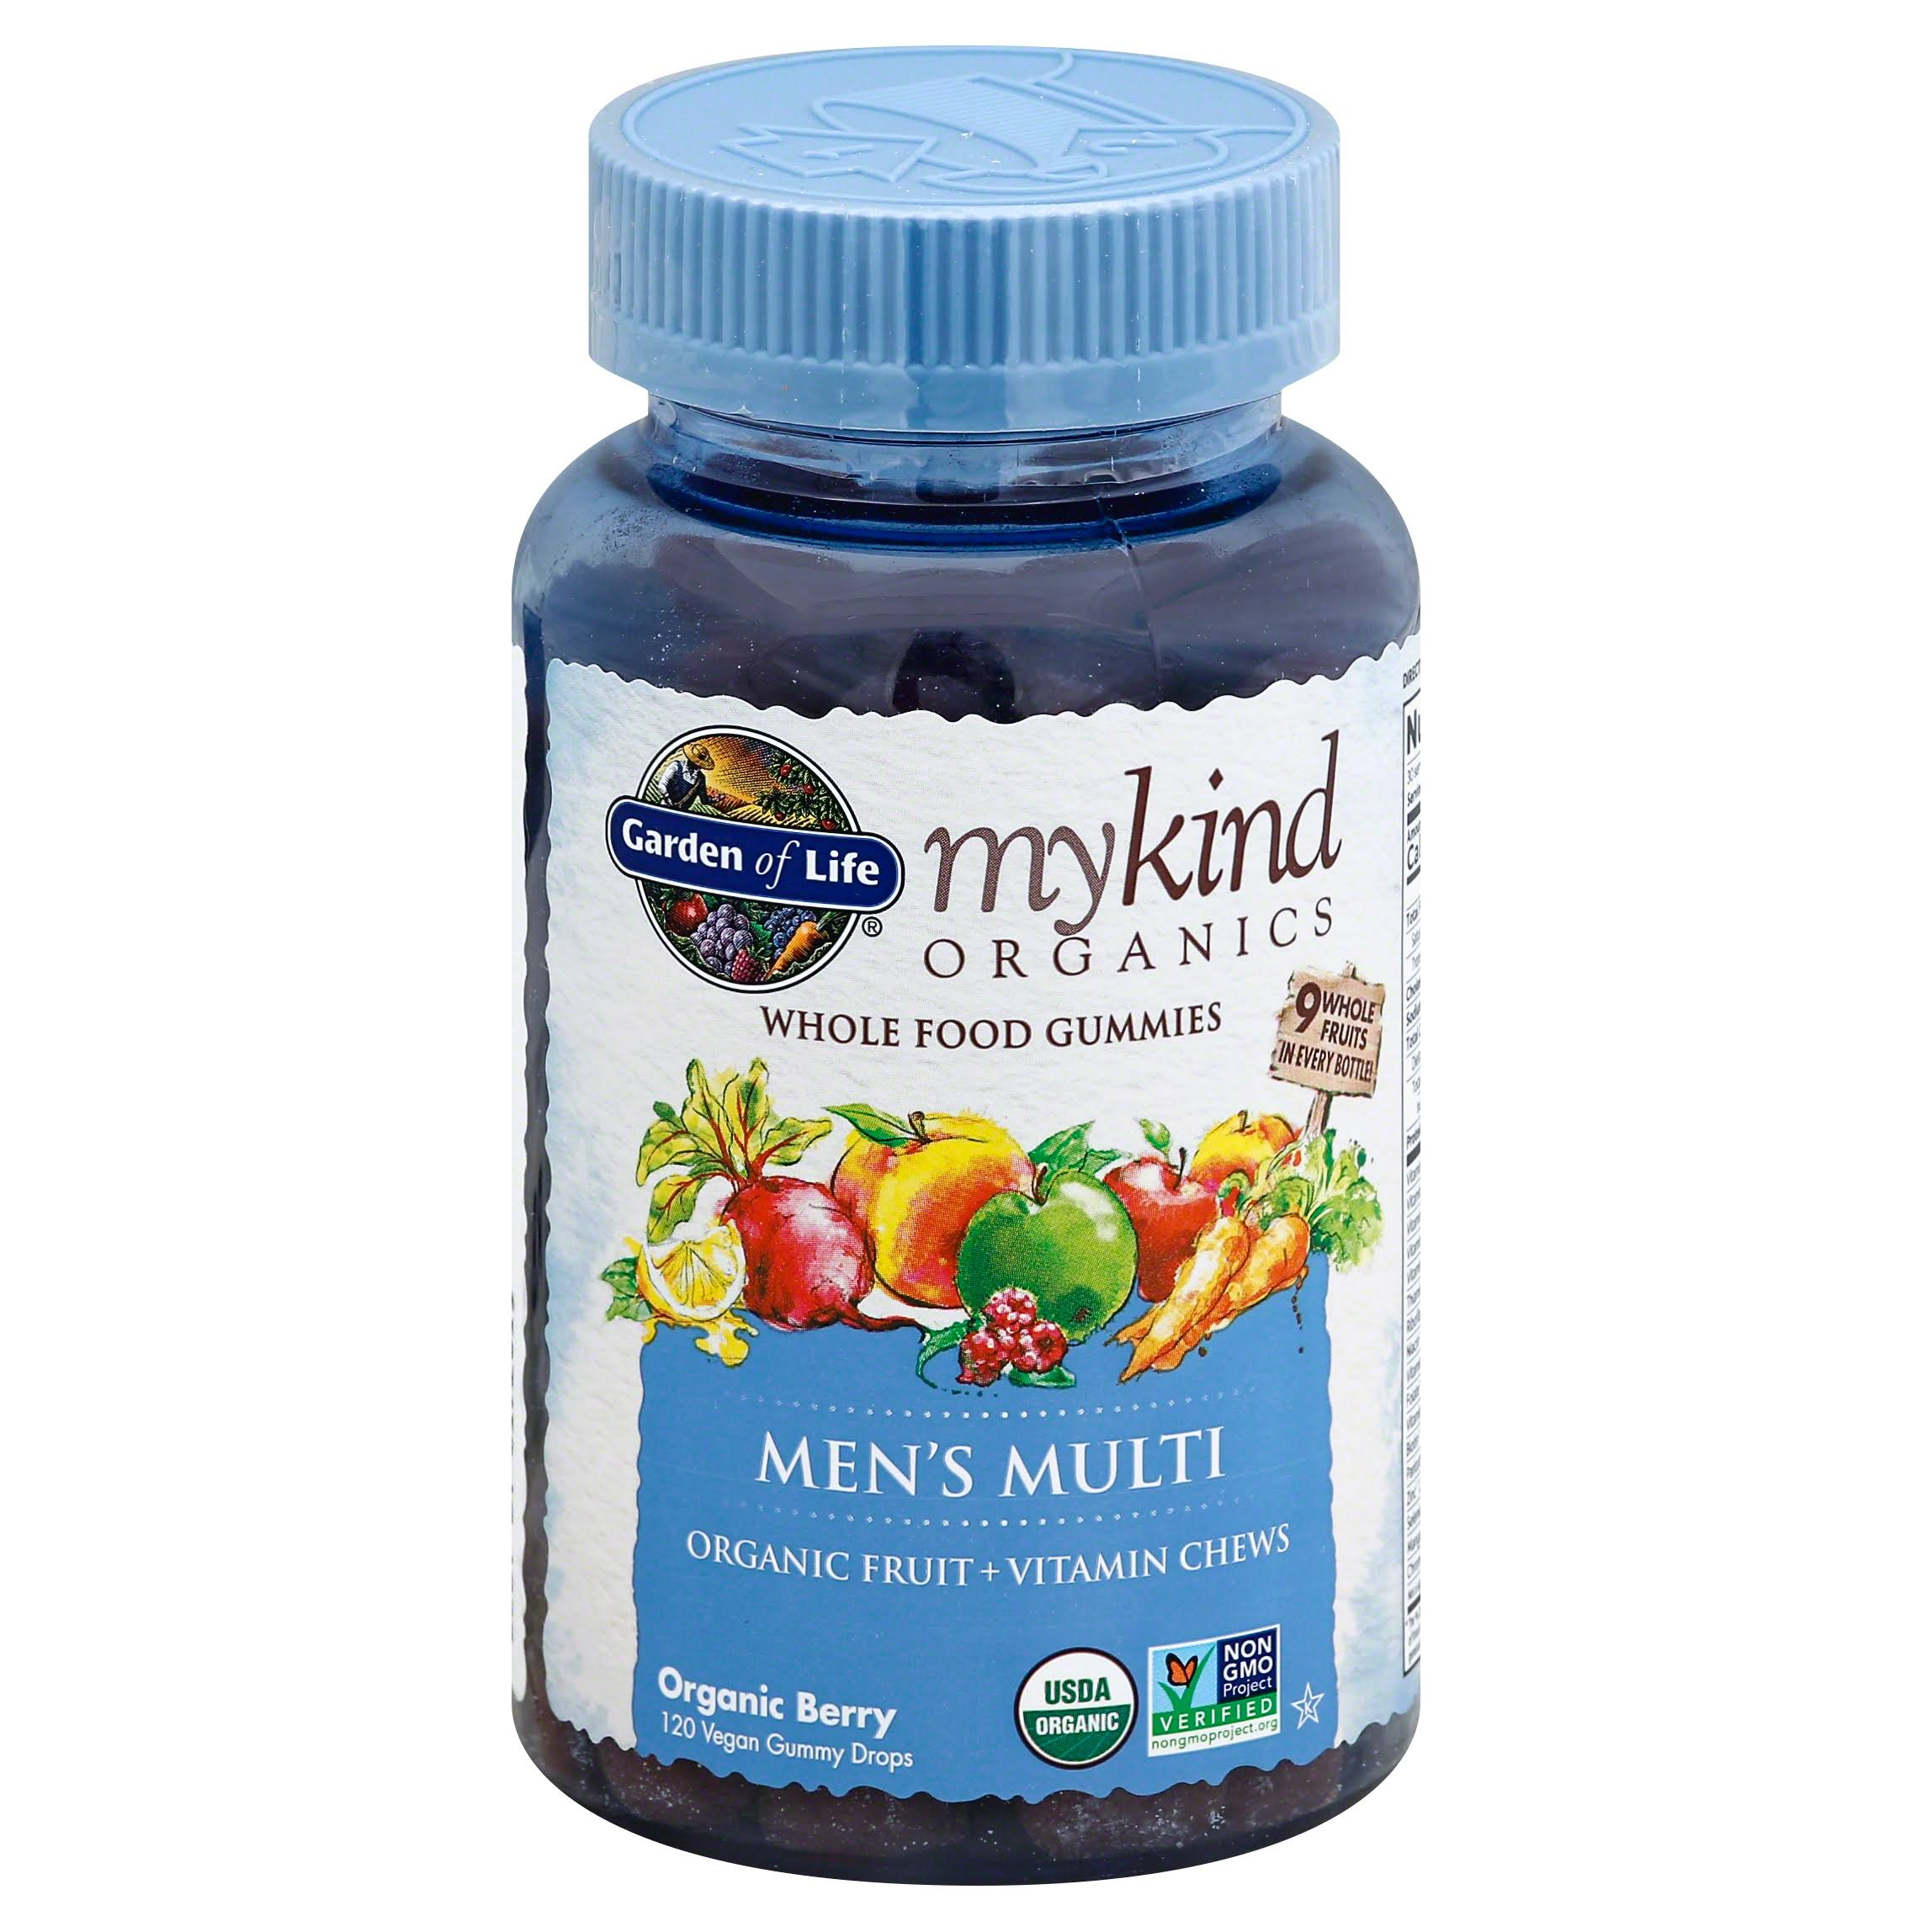 Garden of Life Mykind Organics Mens Multi Whole Food Gummies Vitamin - Berry, 120ct